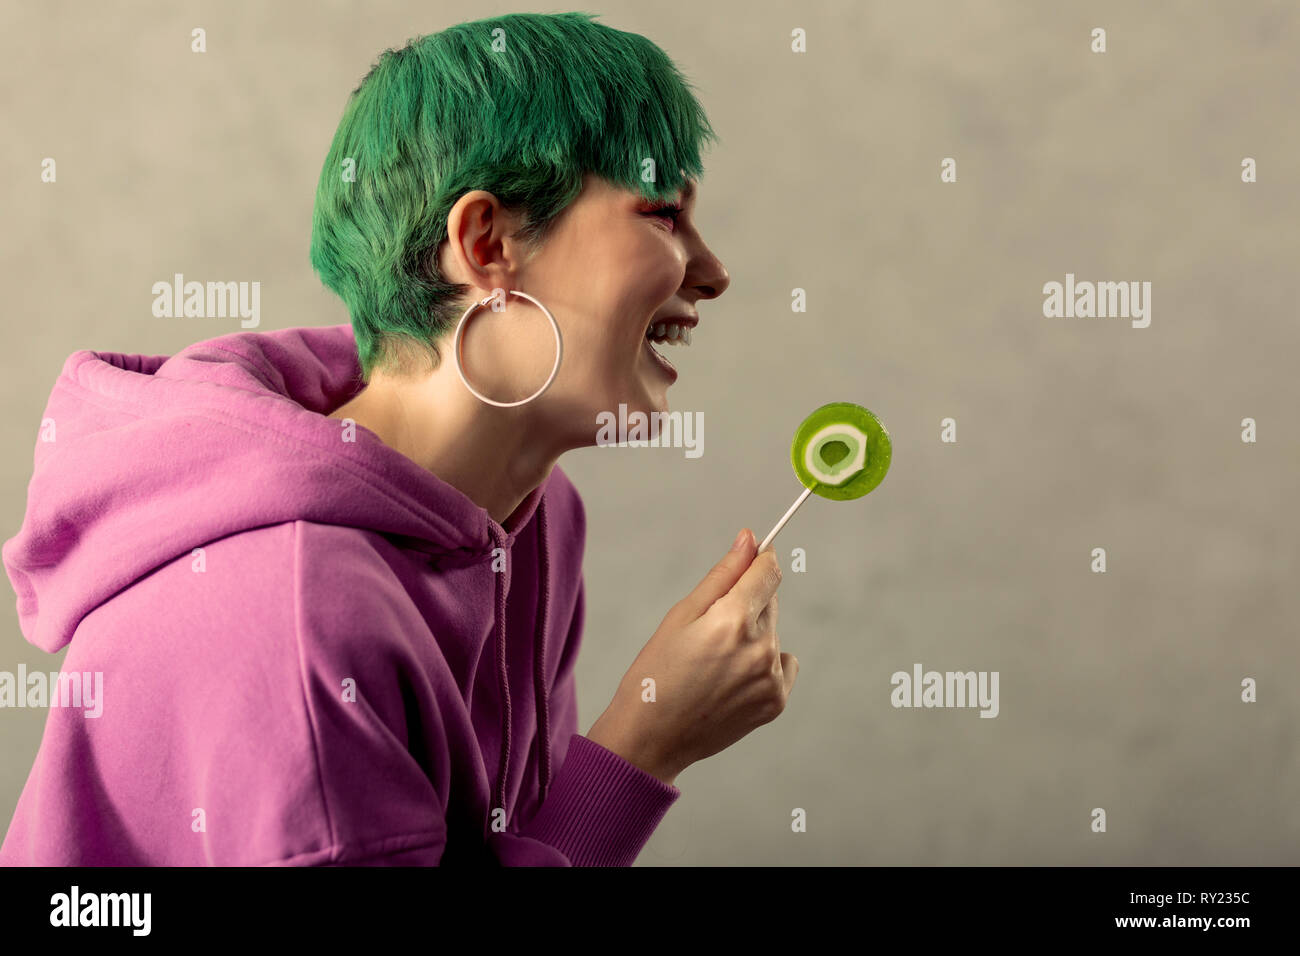 Positive green haired woman standing half face - Stock Image